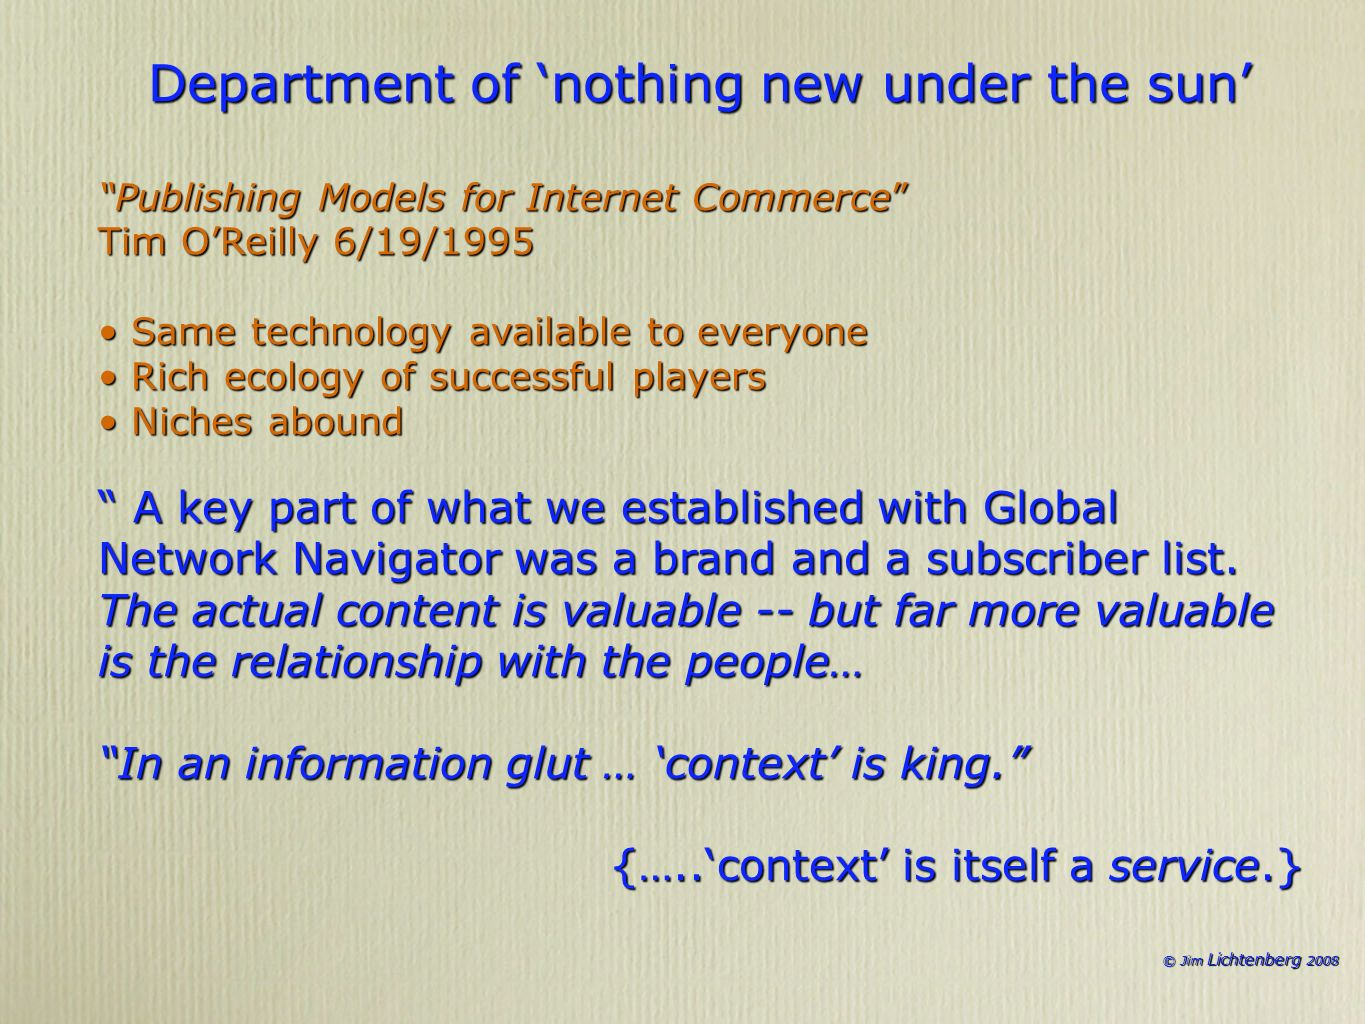 © Jim Lichtenberg 2008 Department of nothing new under the sun Publishing Models for Internet Commerce Tim OReilly 6/19/1995 Same technology available to everyone Same technology available to everyone Rich ecology of successful players Rich ecology of successful players Niches abound Niches abound A key part of what we established with Global Network Navigator was a brand and a subscriber list.